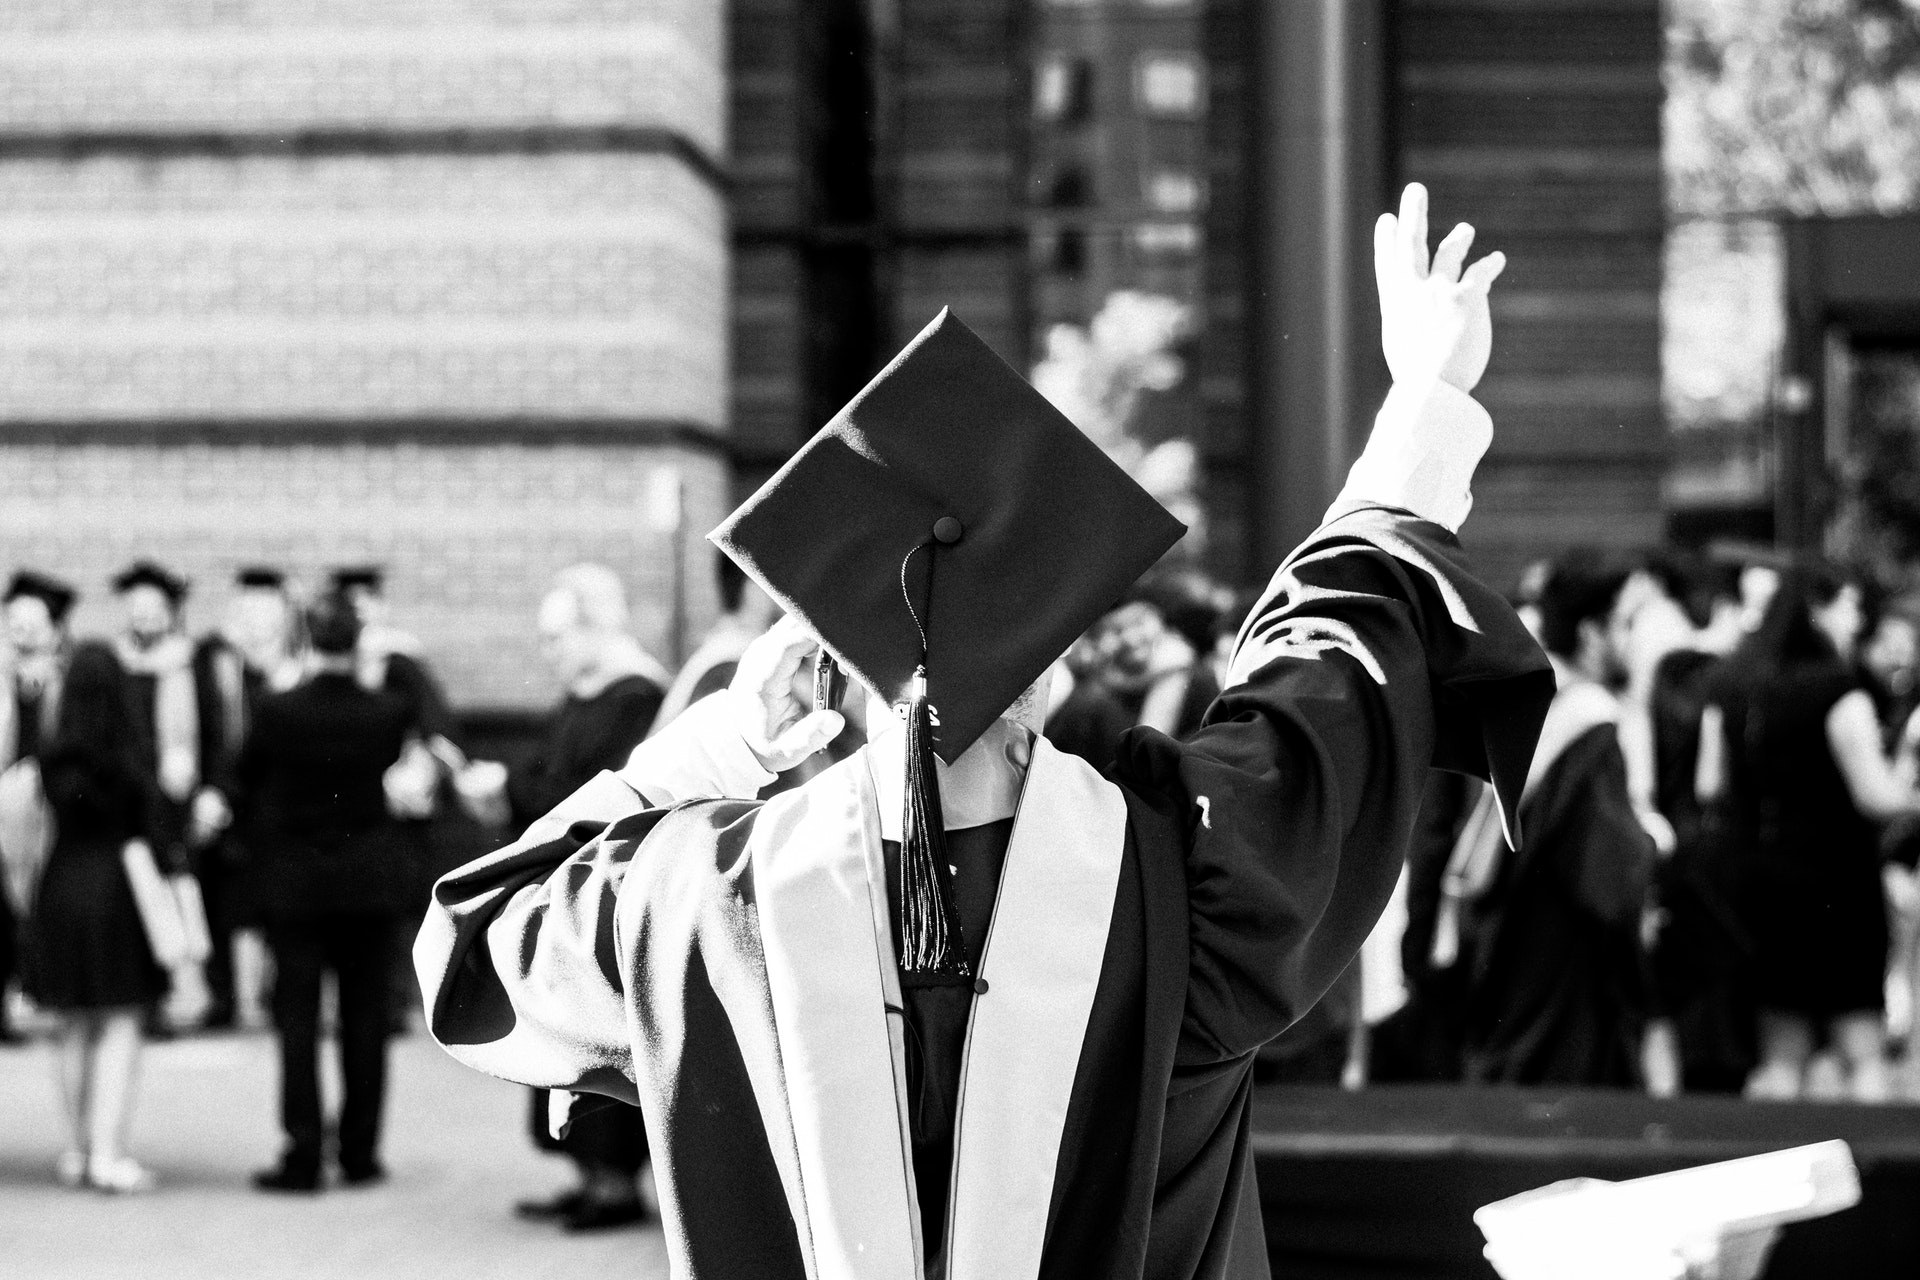 Form Downloads greyscale photography of person wearing academic dress 2365535 1